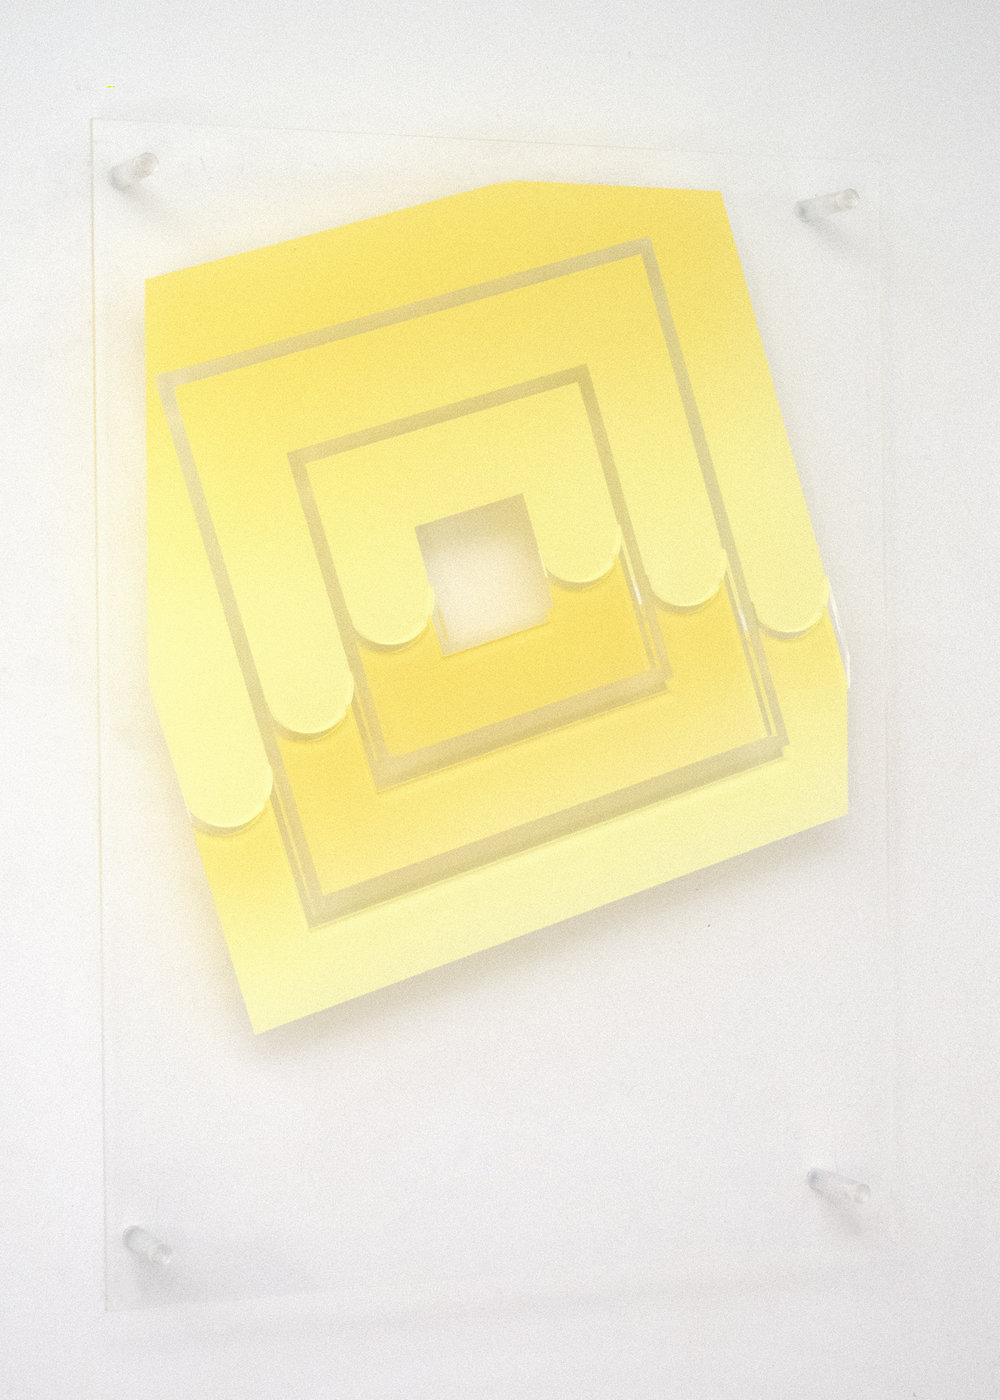 (untitled -  three squares with removed parts)